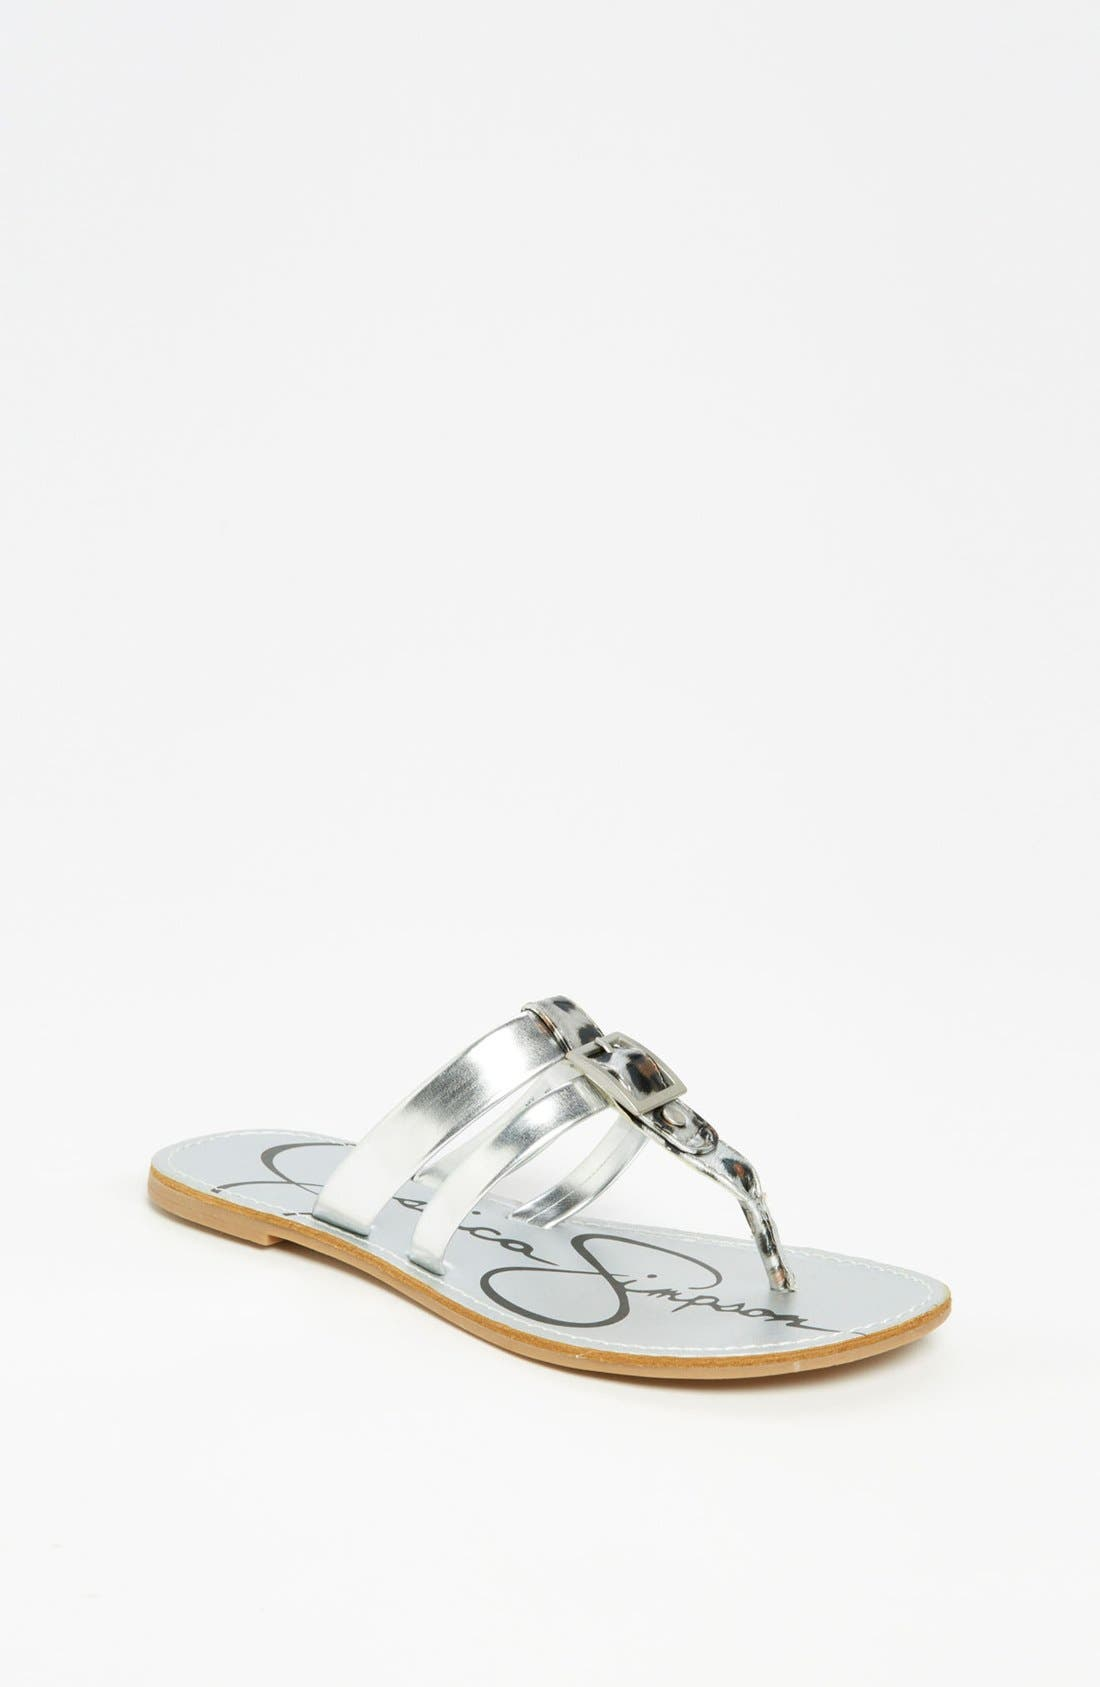 Main Image - Jessica Simpson 'Nev' Sandal (Toddler, Little Kid & Big Kid)